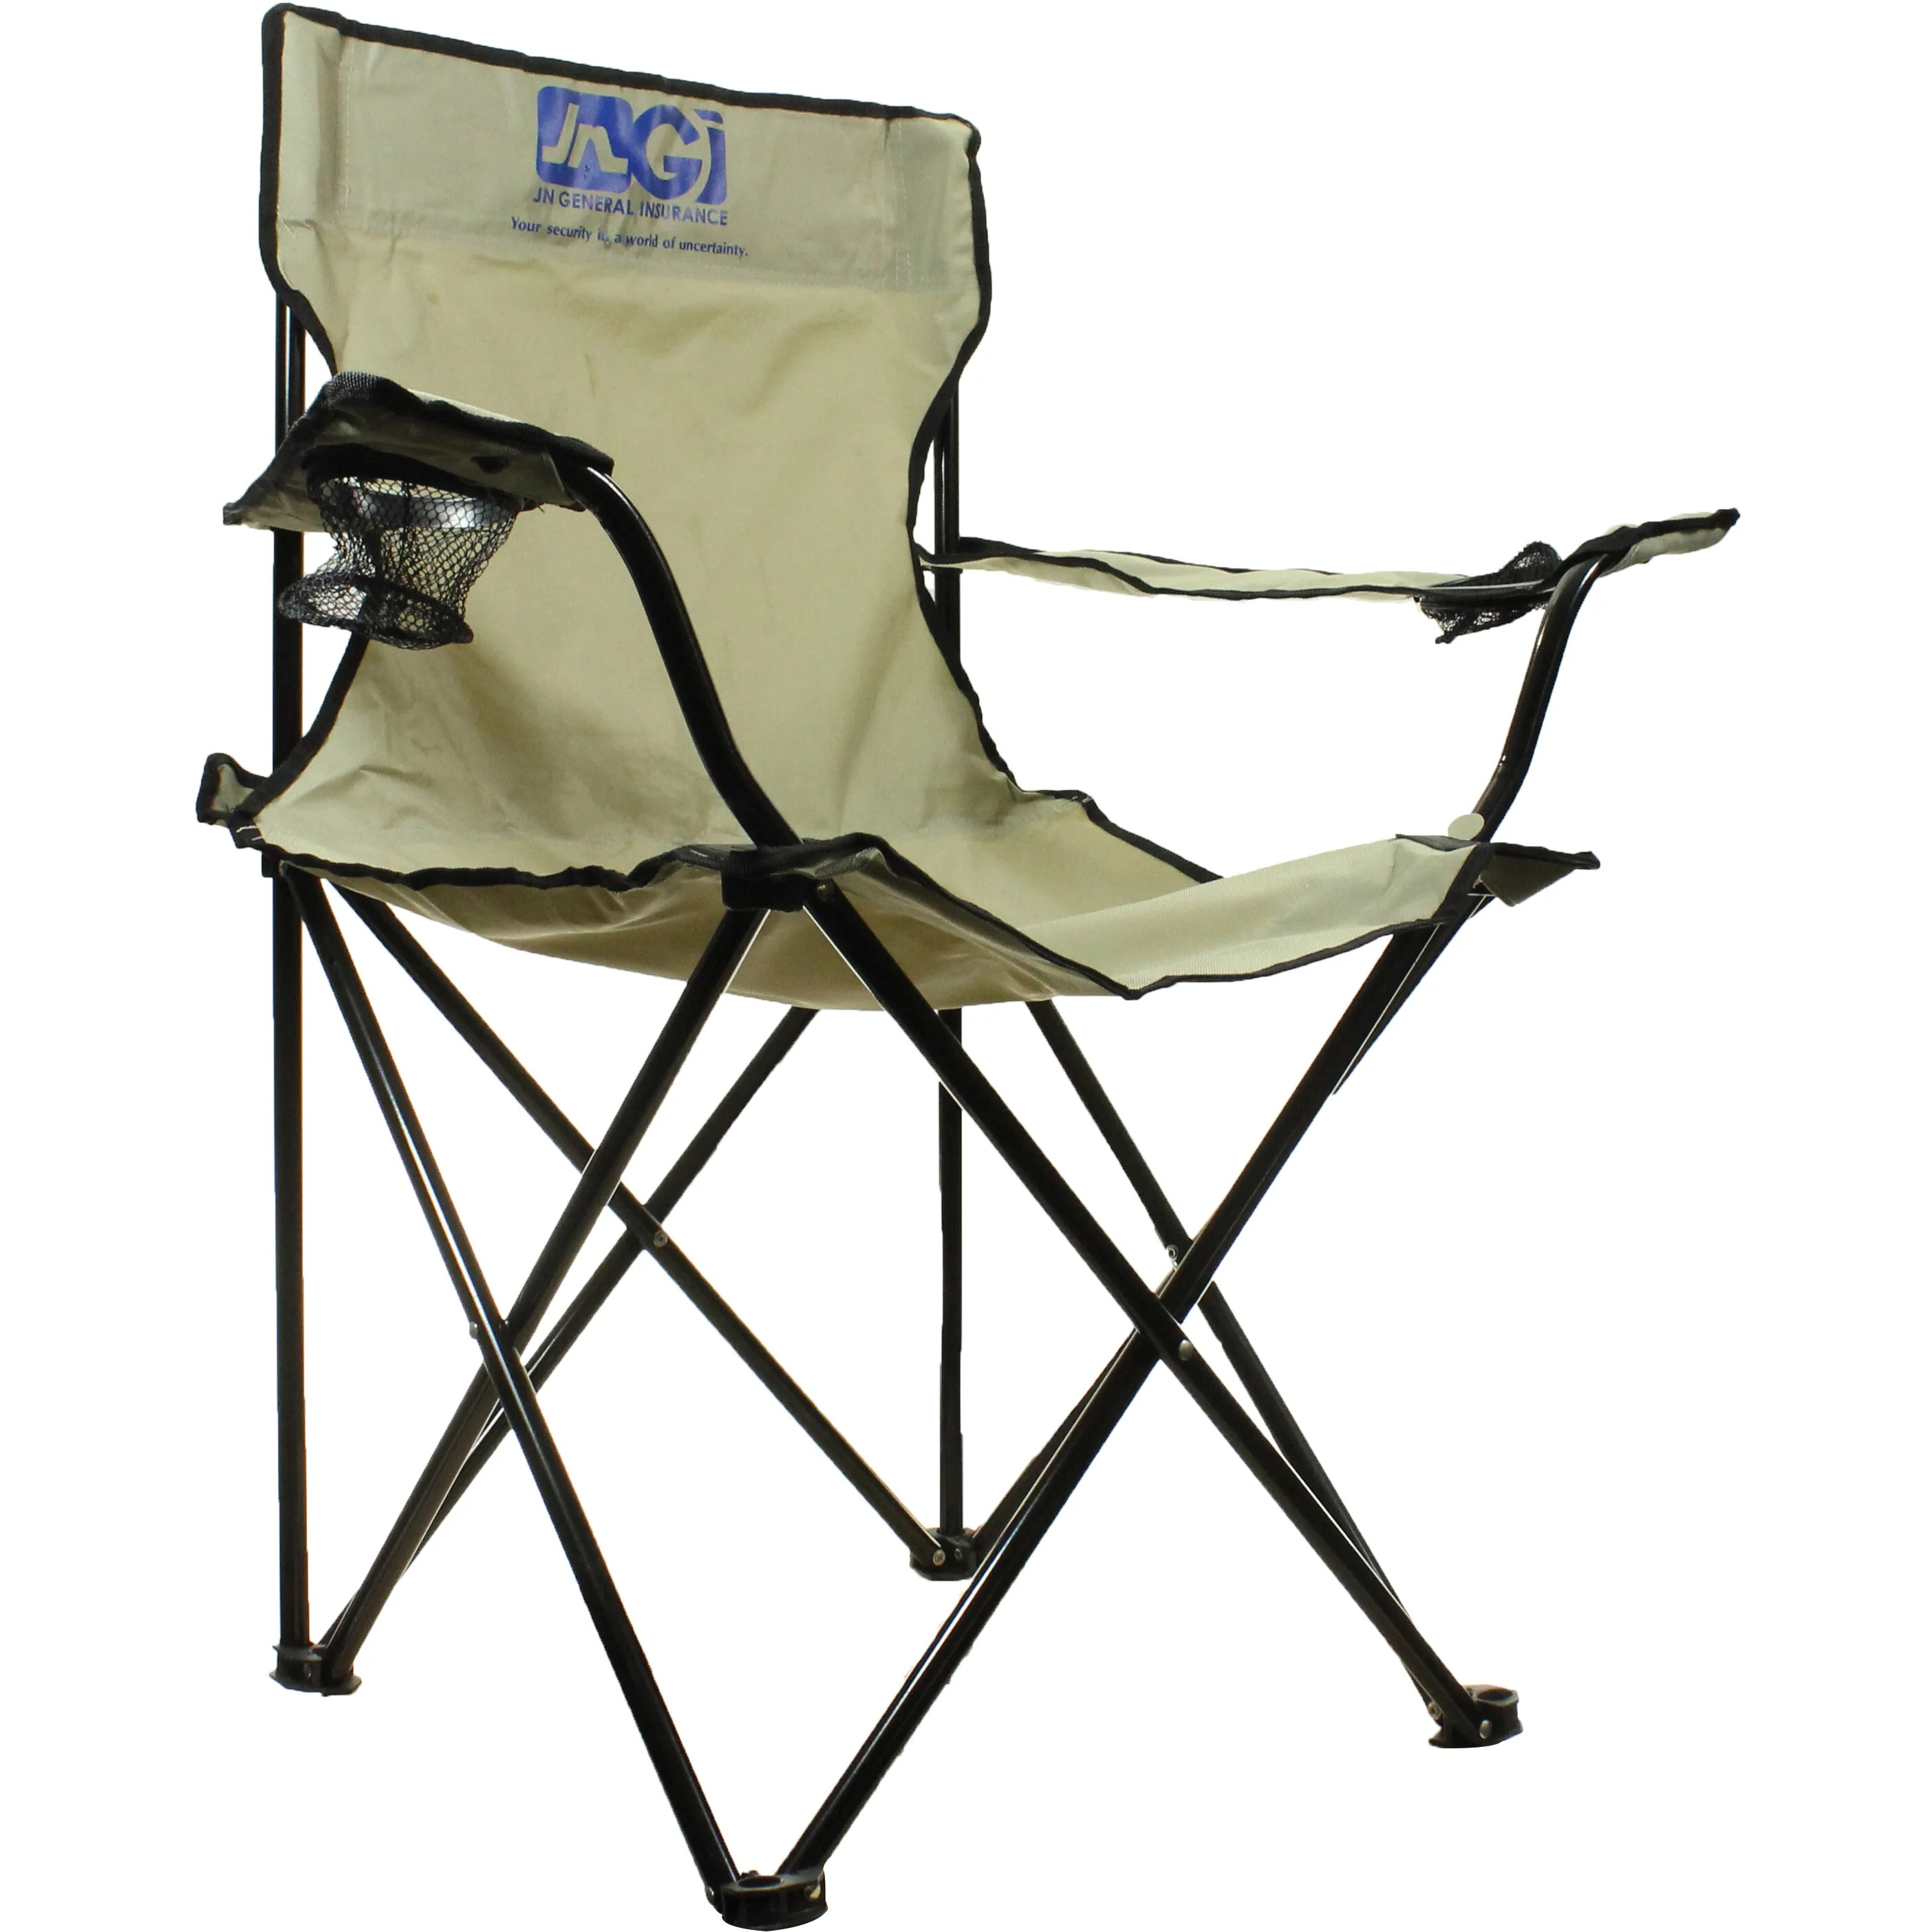 quality folding chairs chair rail tile at lowes with carrying bag trade show giveaways